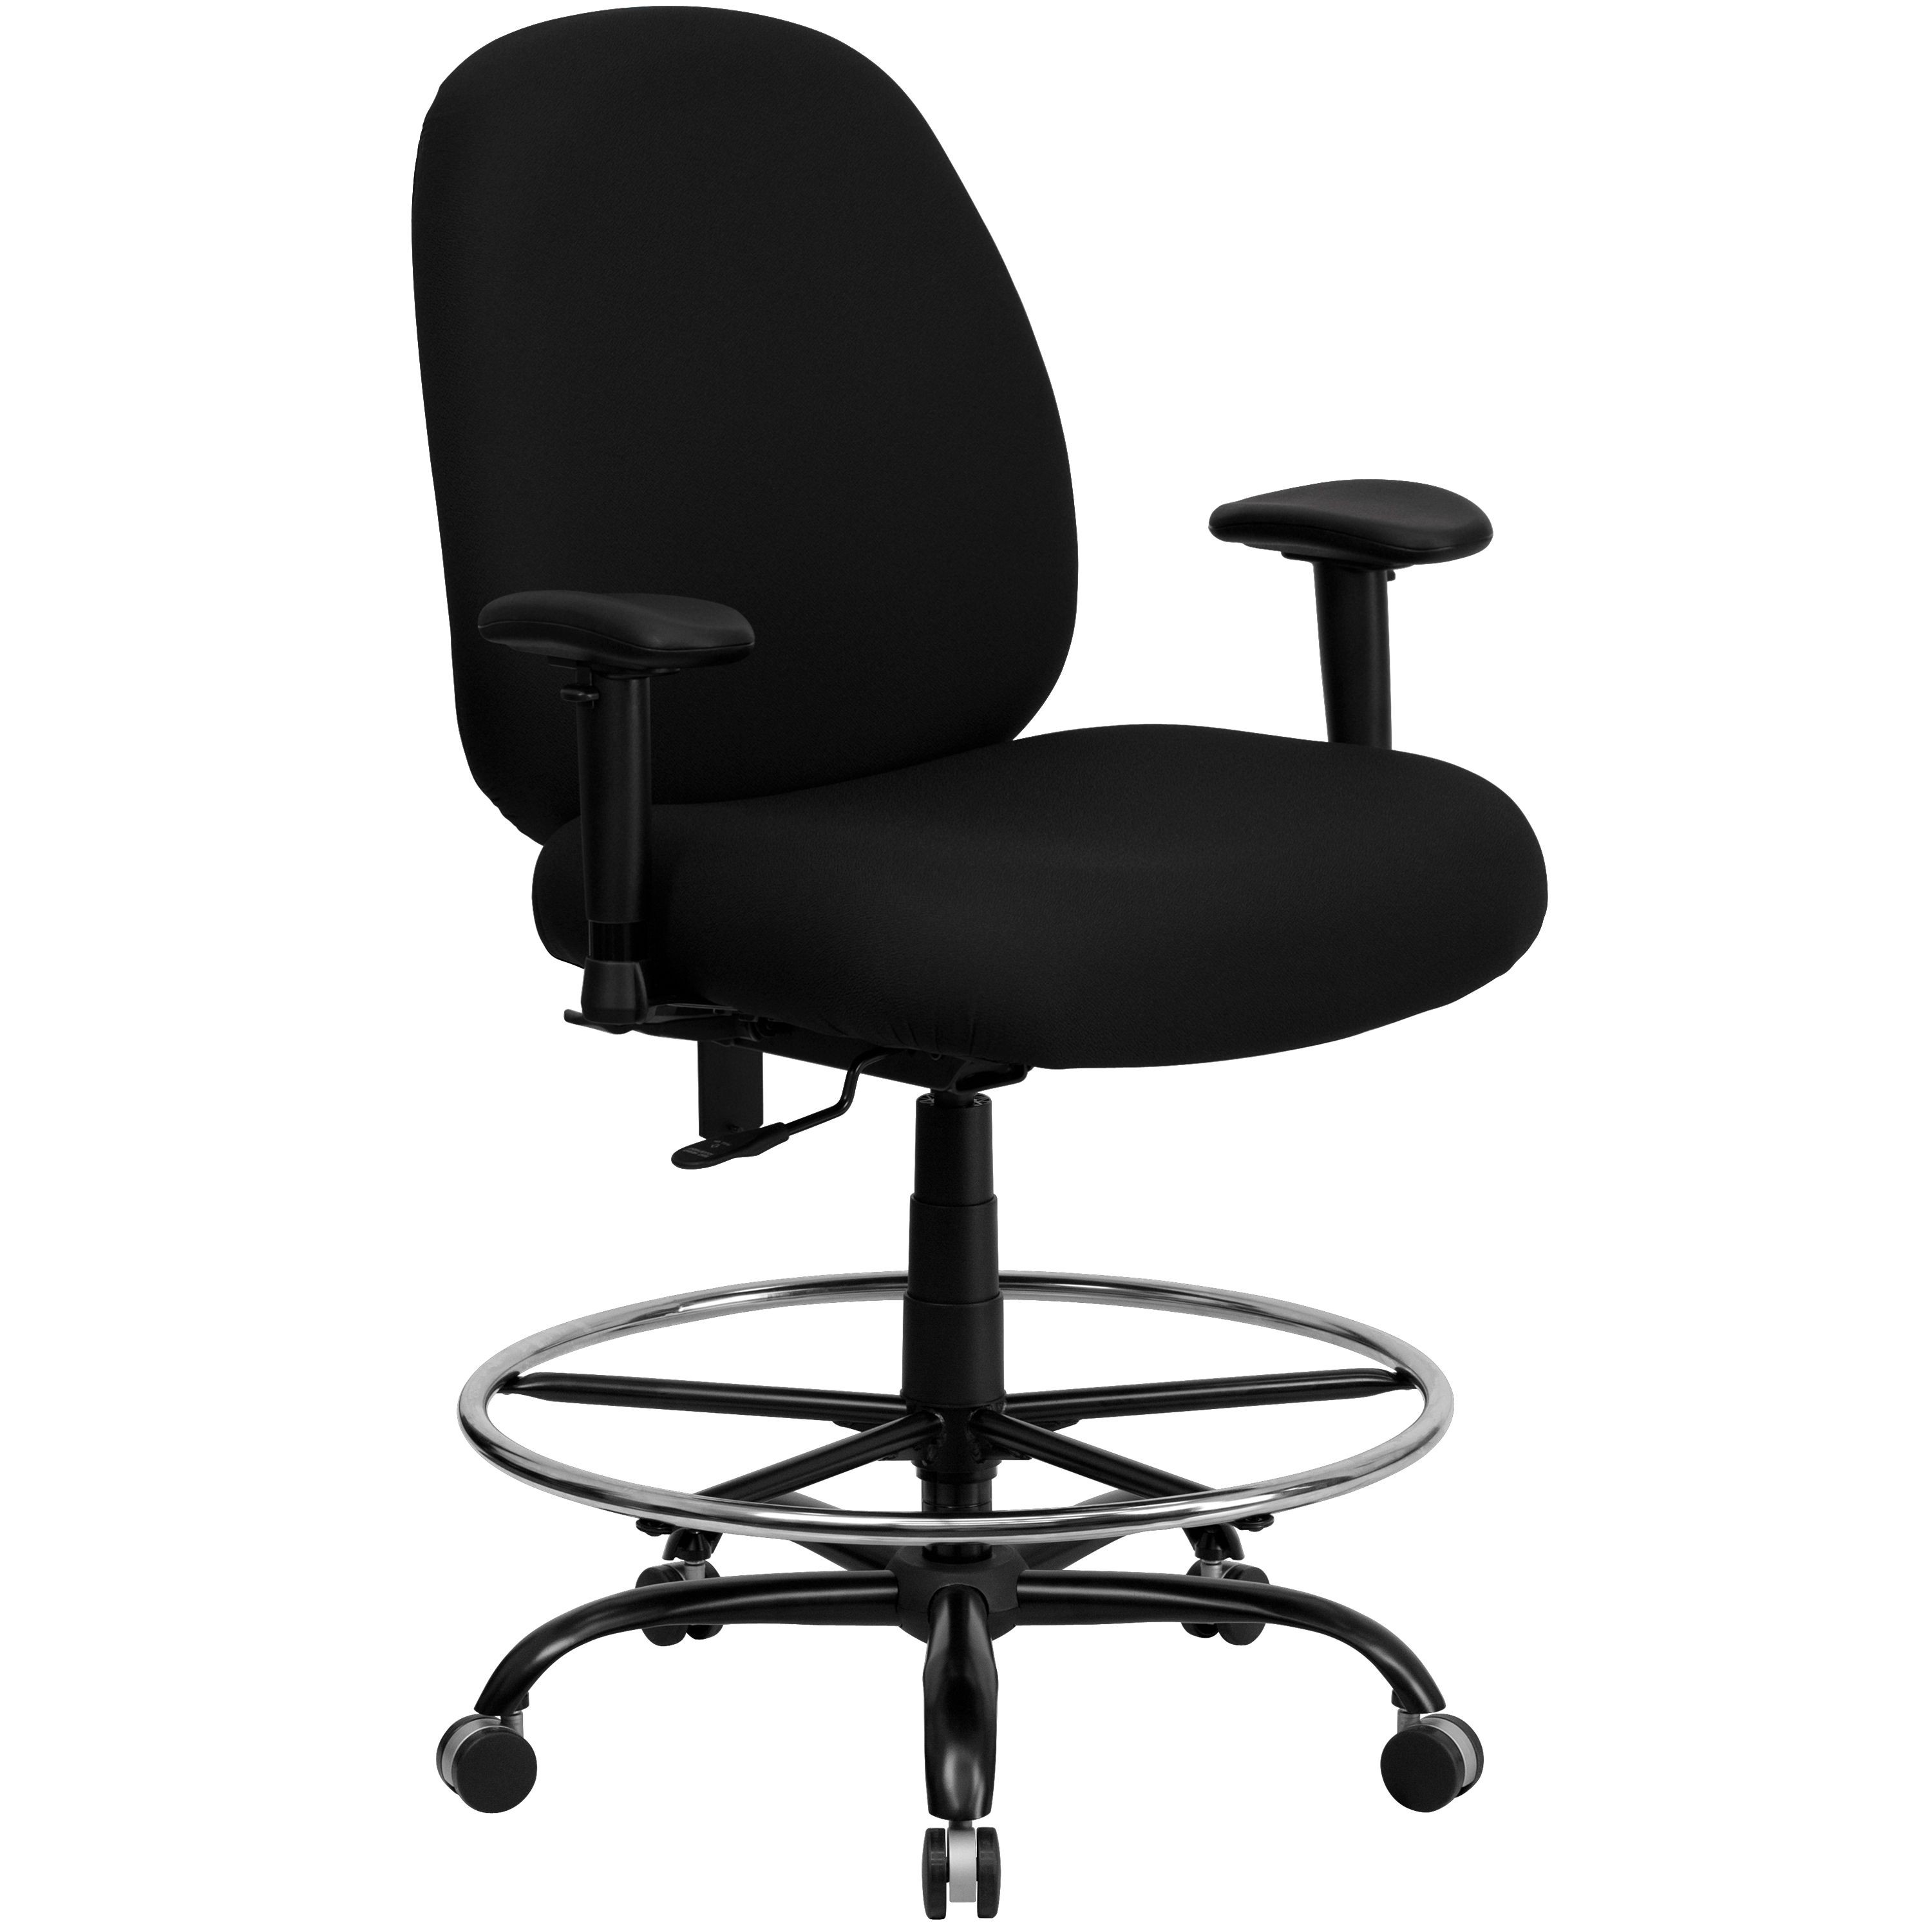 Flash Furniture WL-715MG-BK-AD-GG HERCULES Series Big & Tall Black Fabric Drafting Stool with Extra Wide Seat and Arms, 400 Lb. Capacity